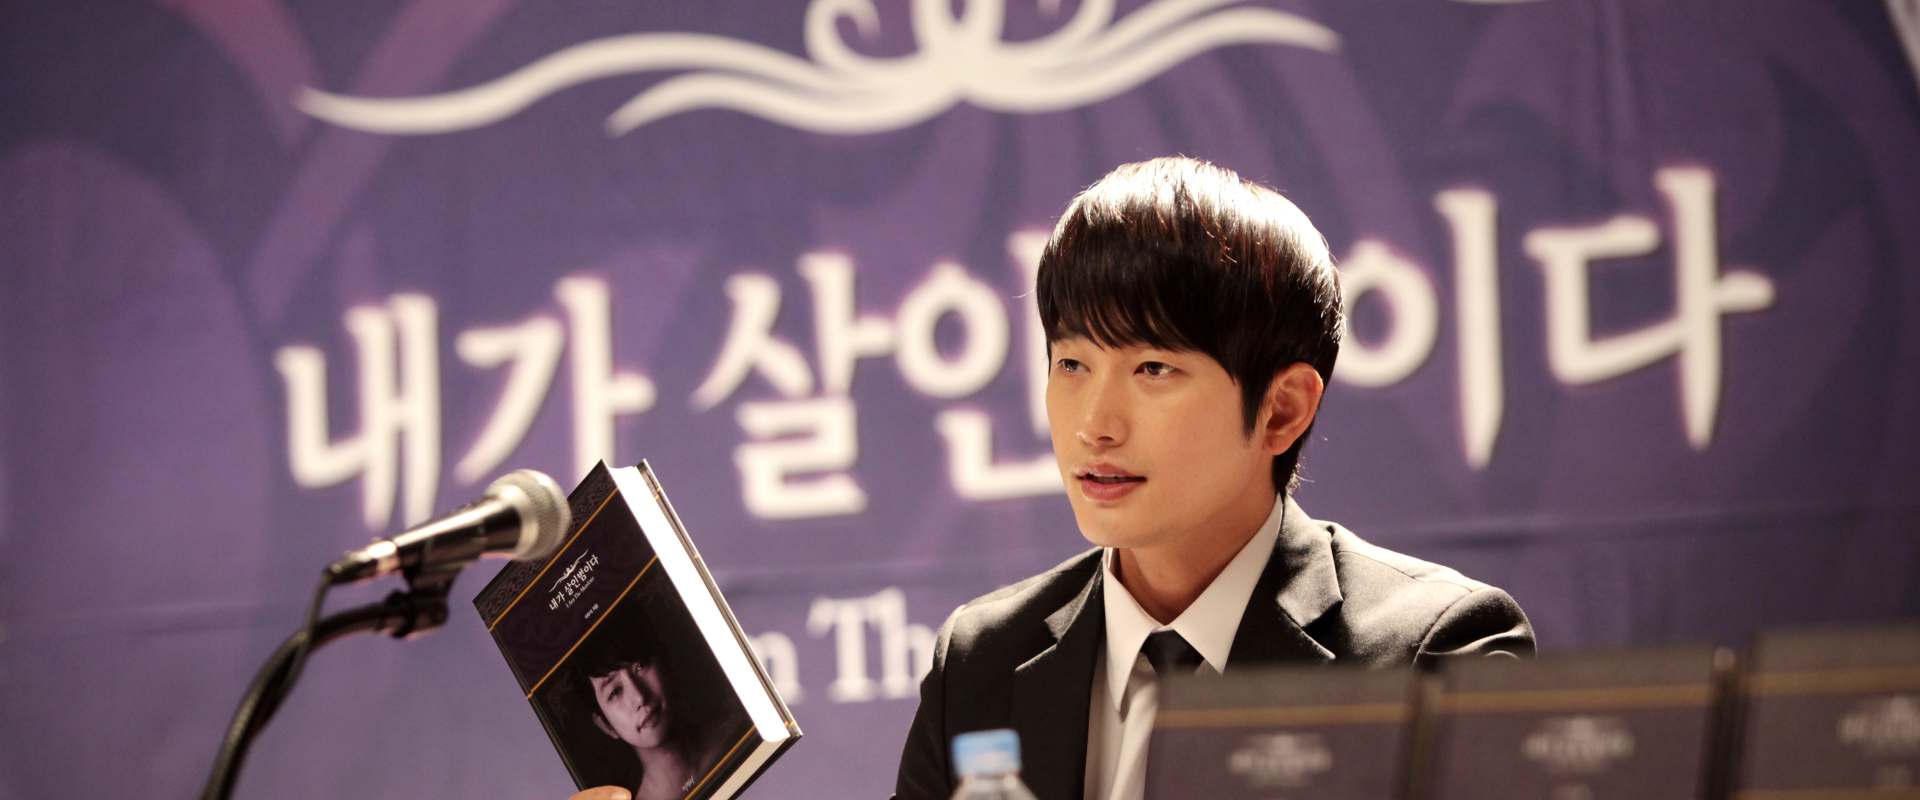 Confession of Murder background 1